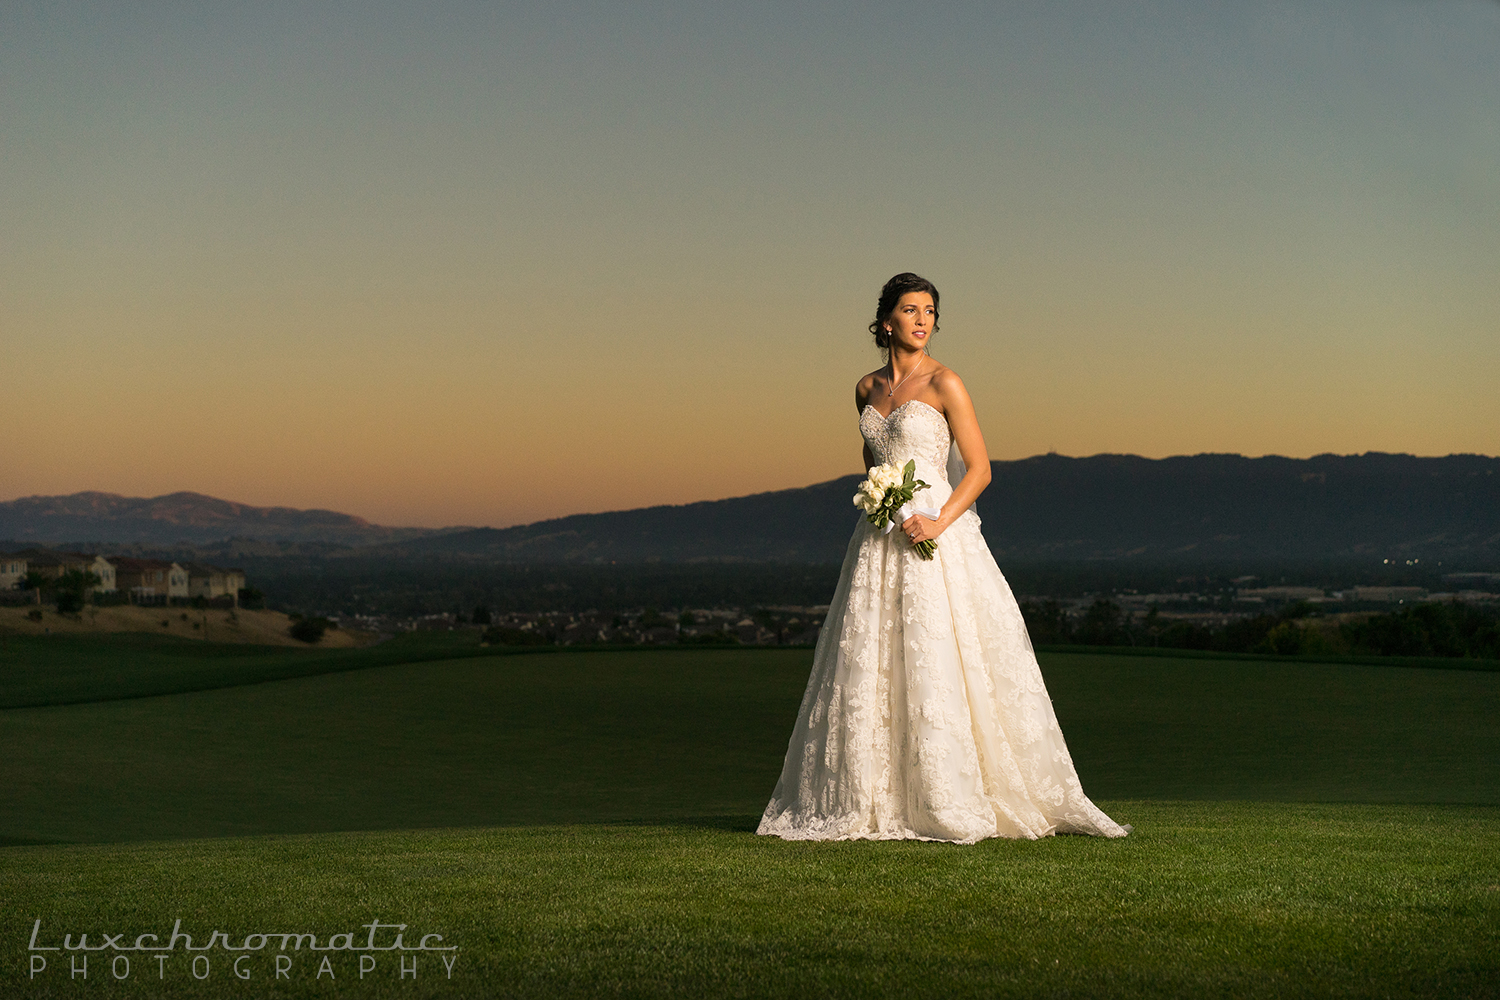 061717_Jessica_Chris-3033-luxchromatic-wedding-bride-groom-brides-sonyalpha-sonyimages-sony-sonyphotography-sanfrancisco-sf-bayarea-weddingphotography-photographer-profoto-interfit-strobe-light-speedlite-dublin-ranch-golf-course-ca-california.jpg